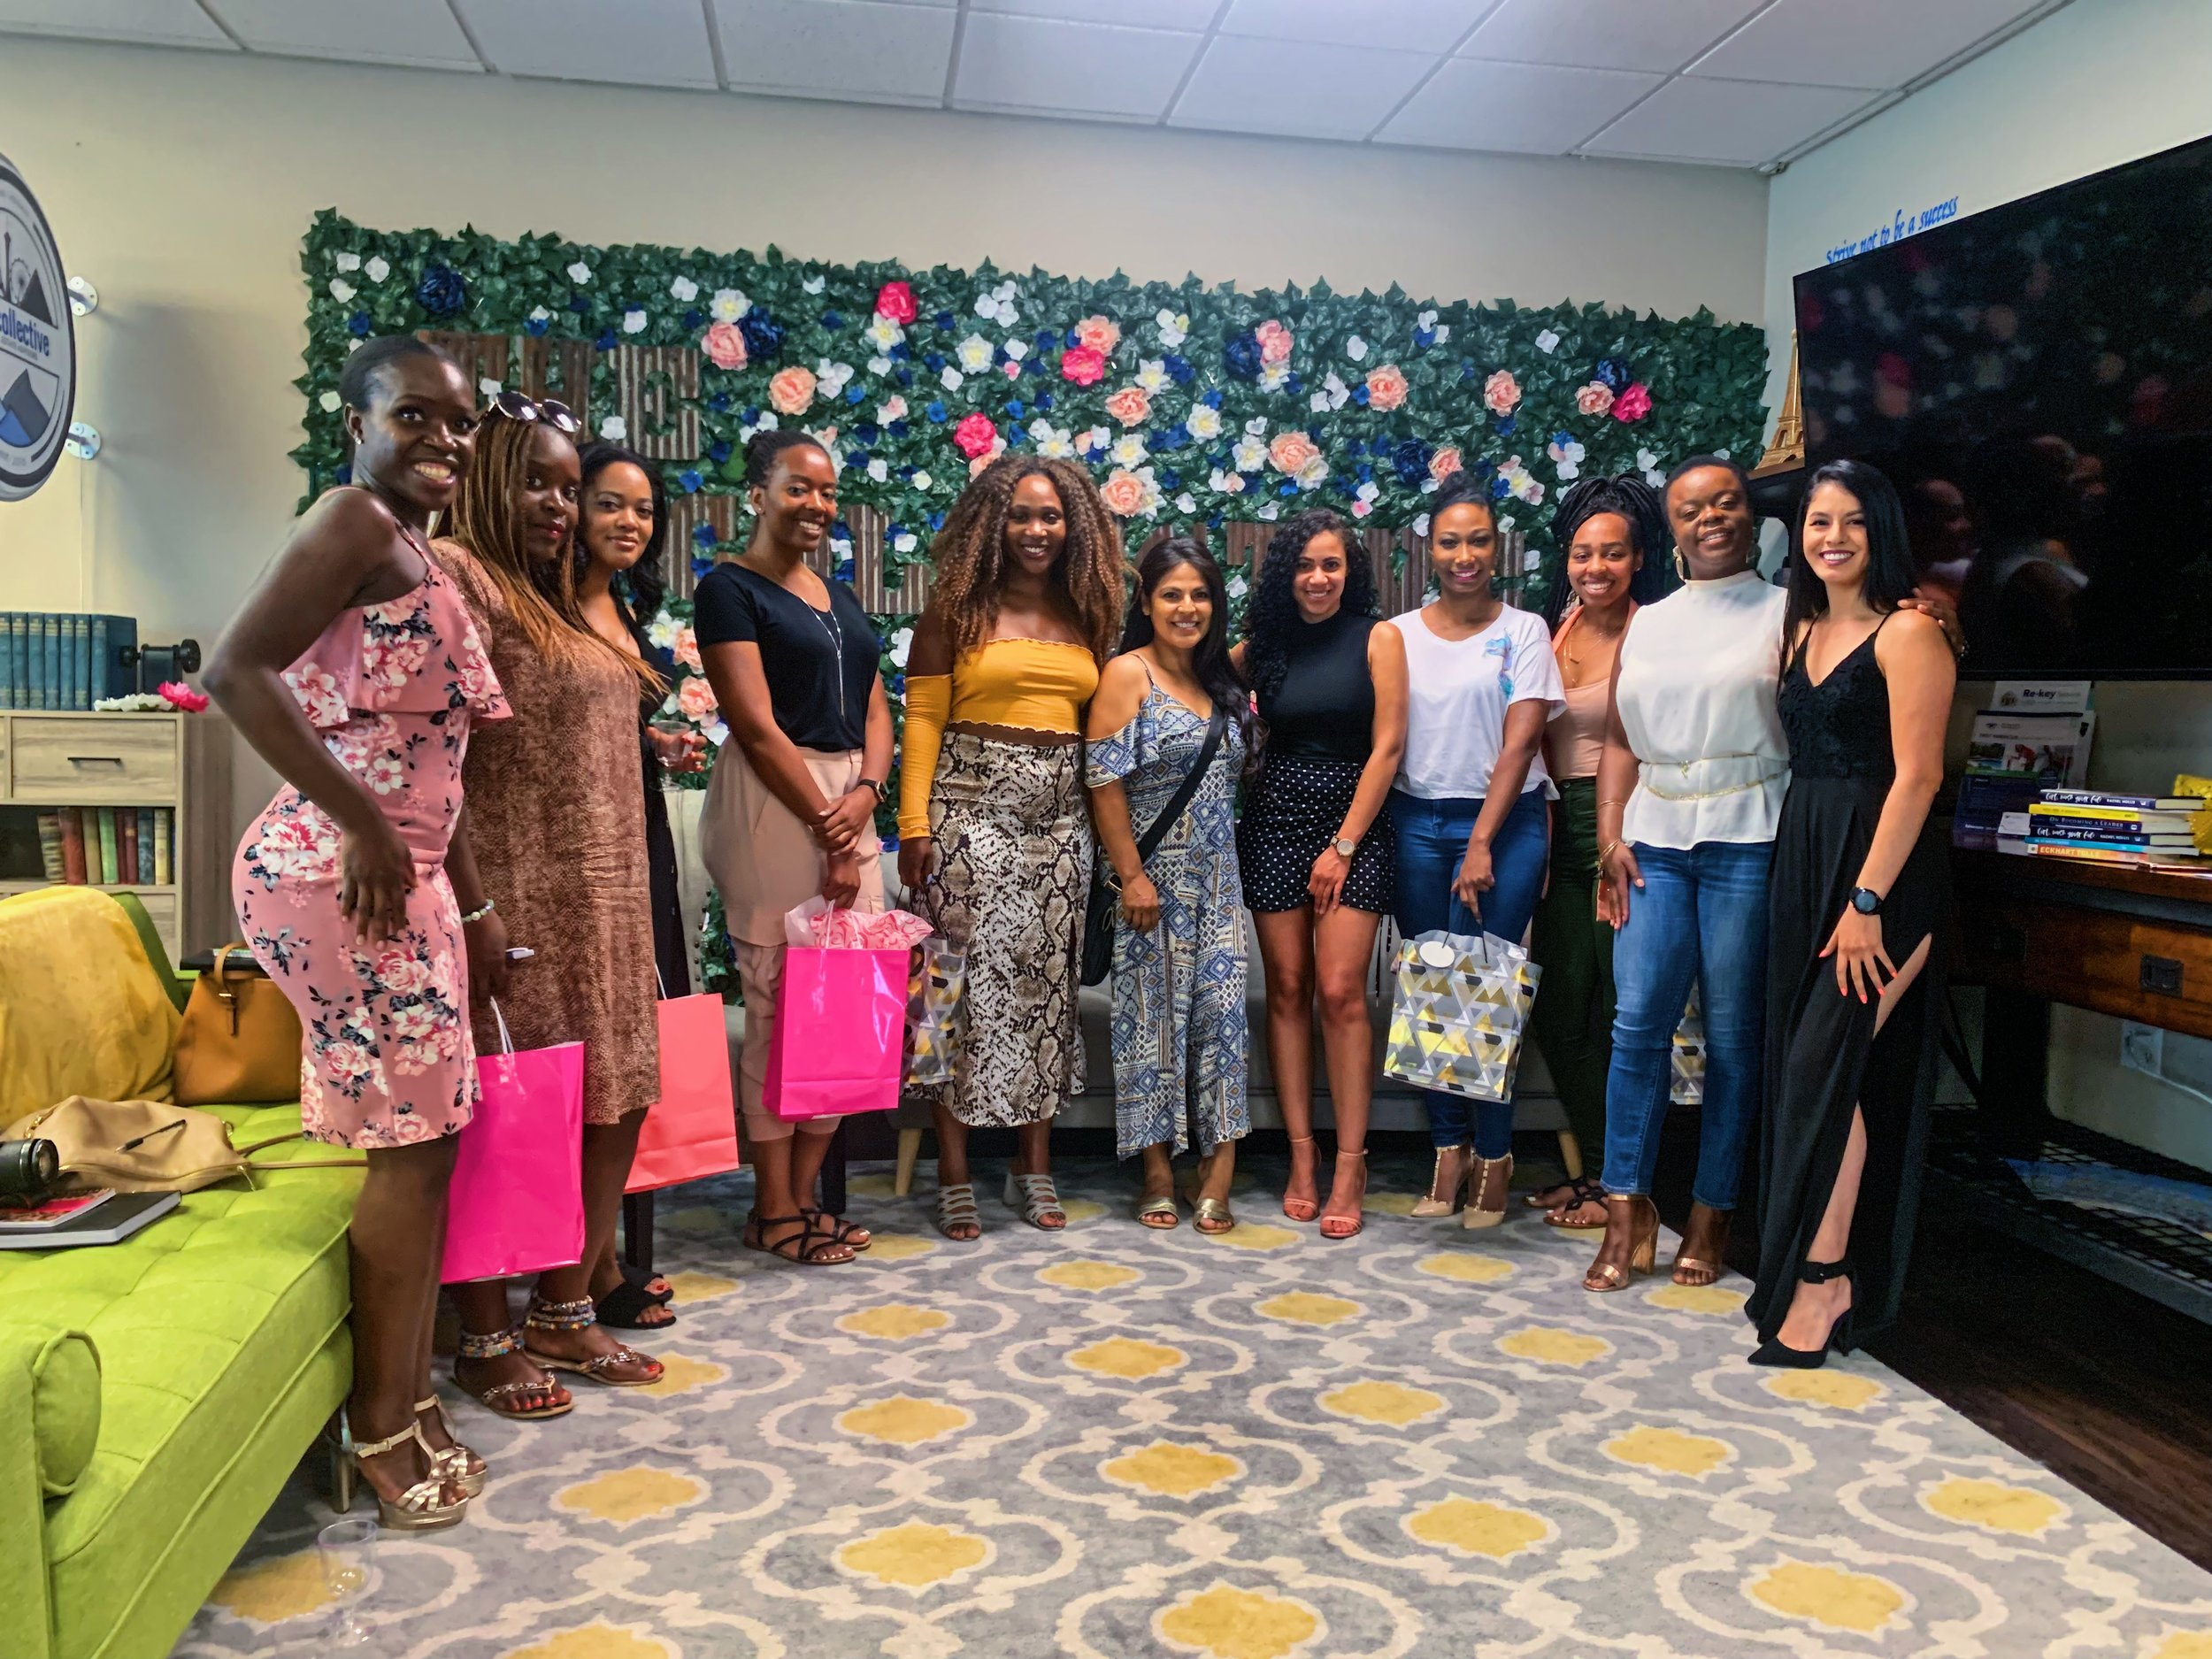 Thank you to all the lovely ladies in attendance :)